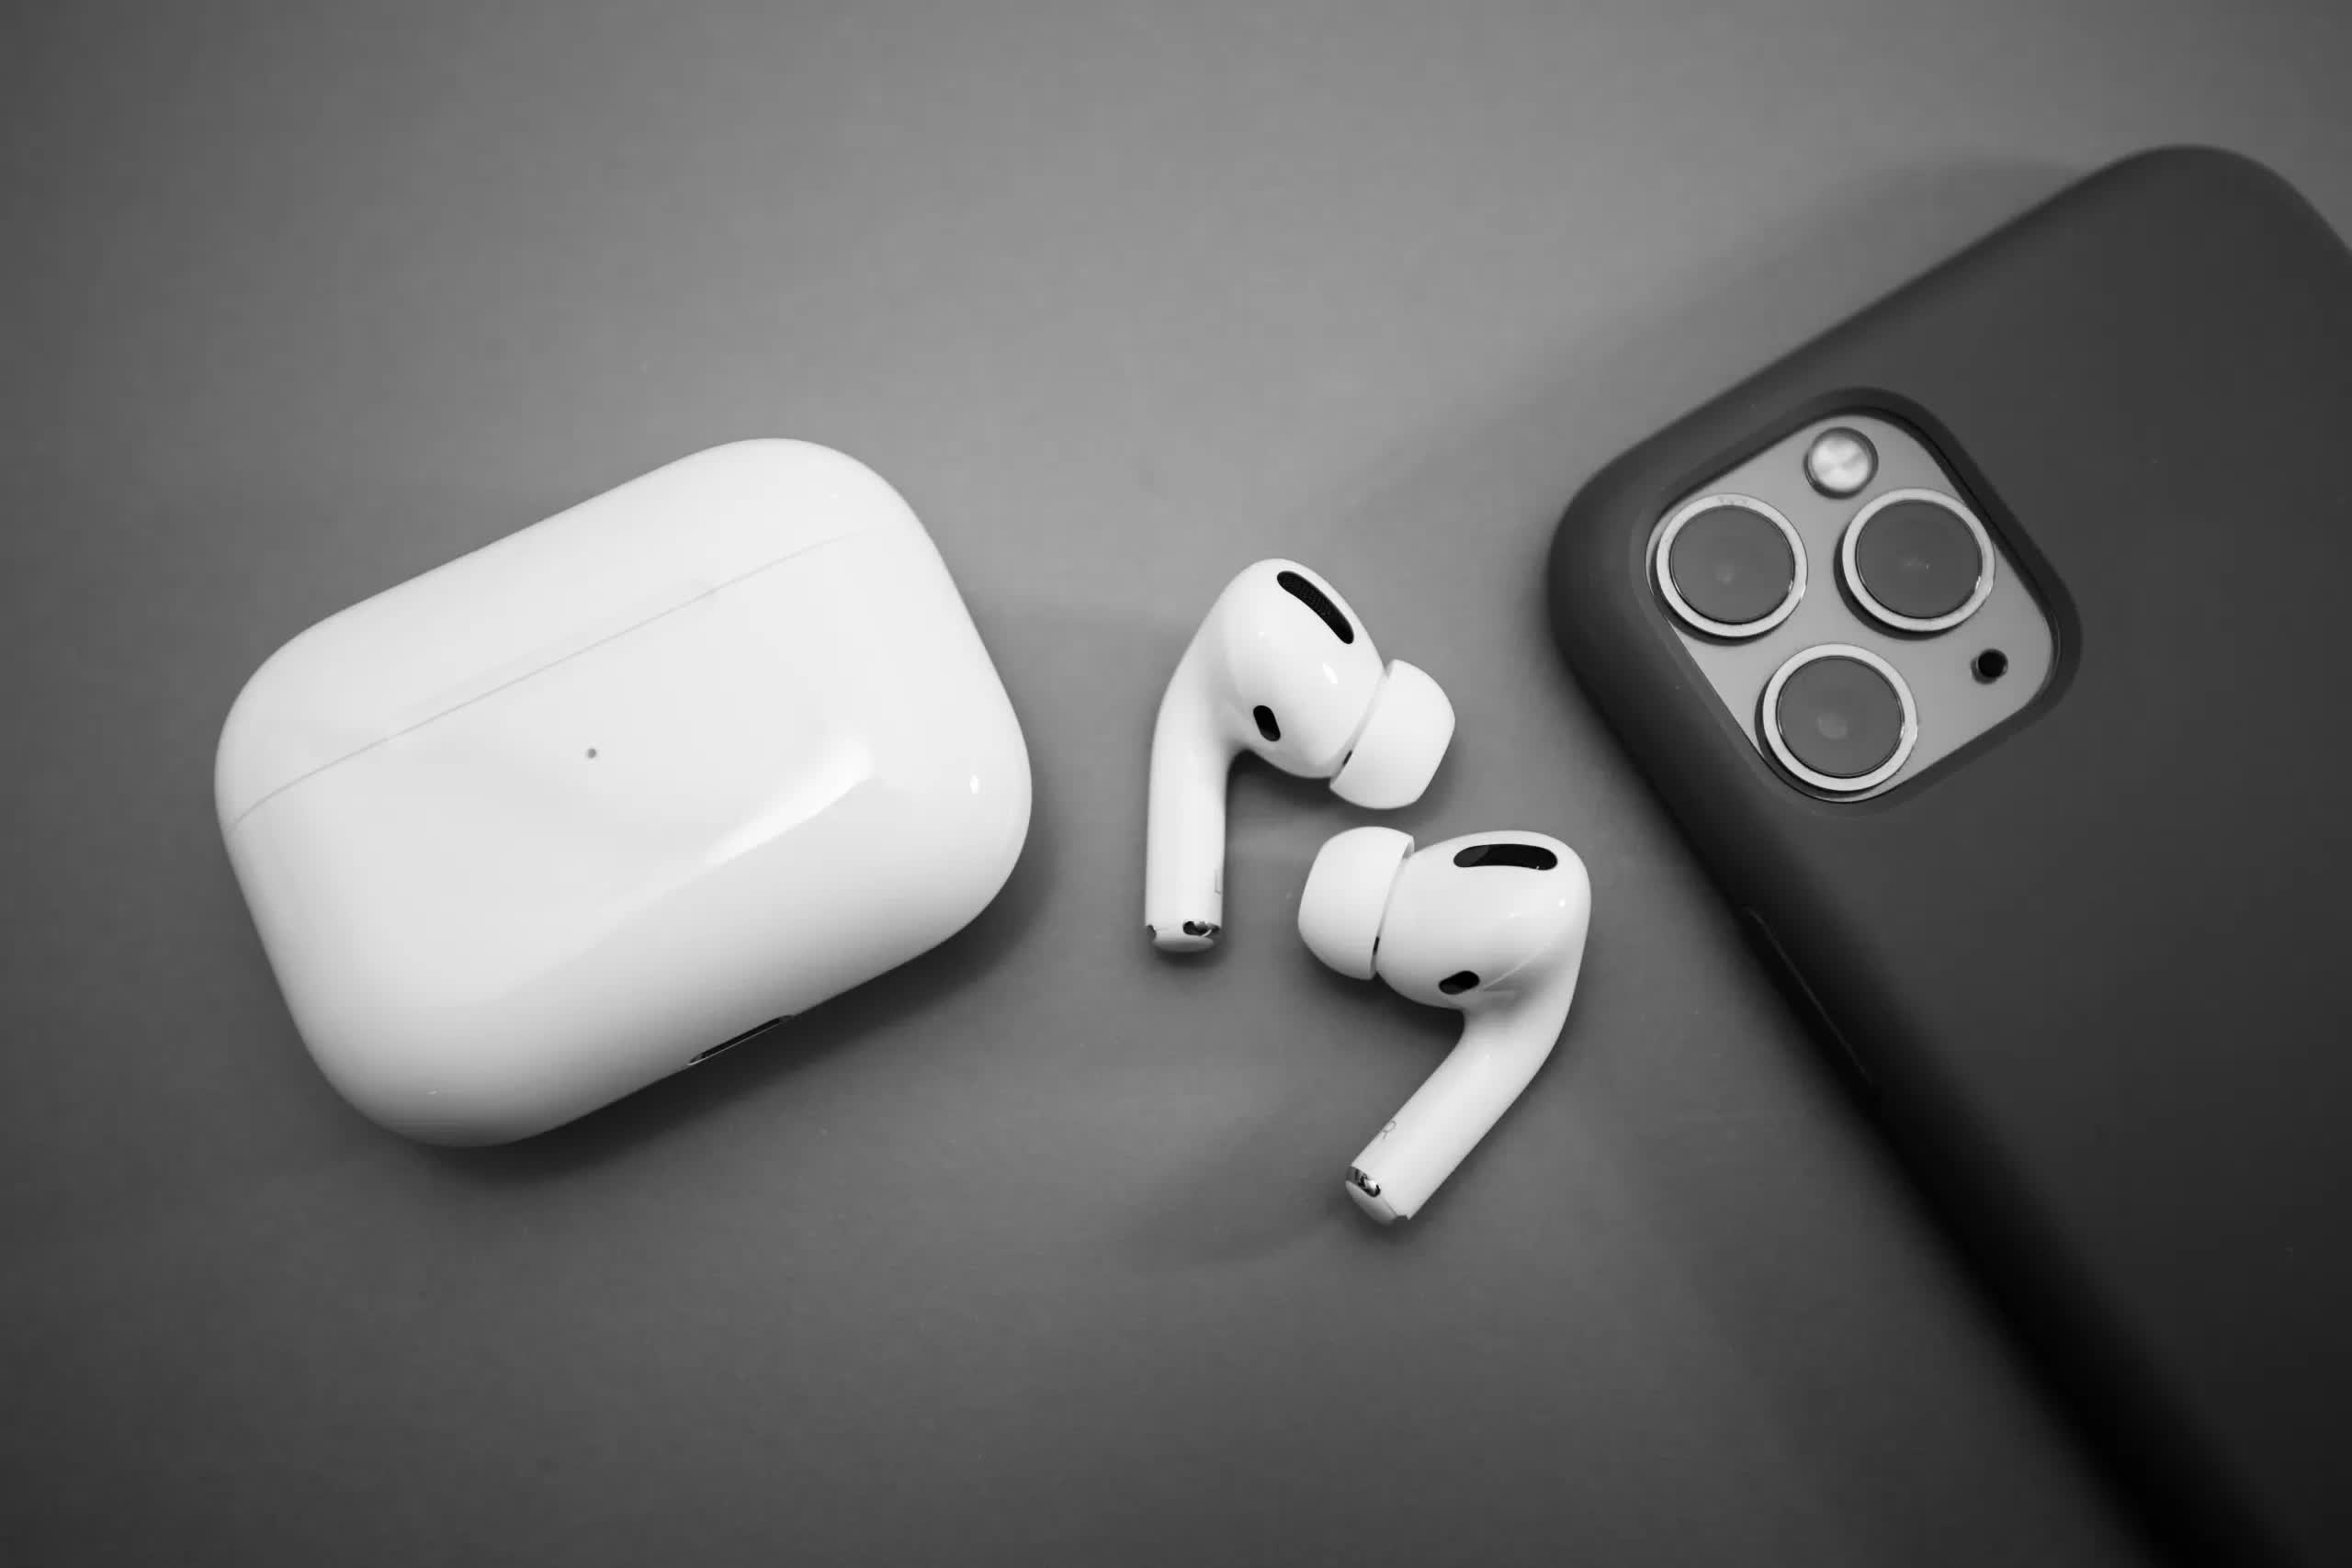 Don't sleep with your AirPods -- you could end up swallowing them